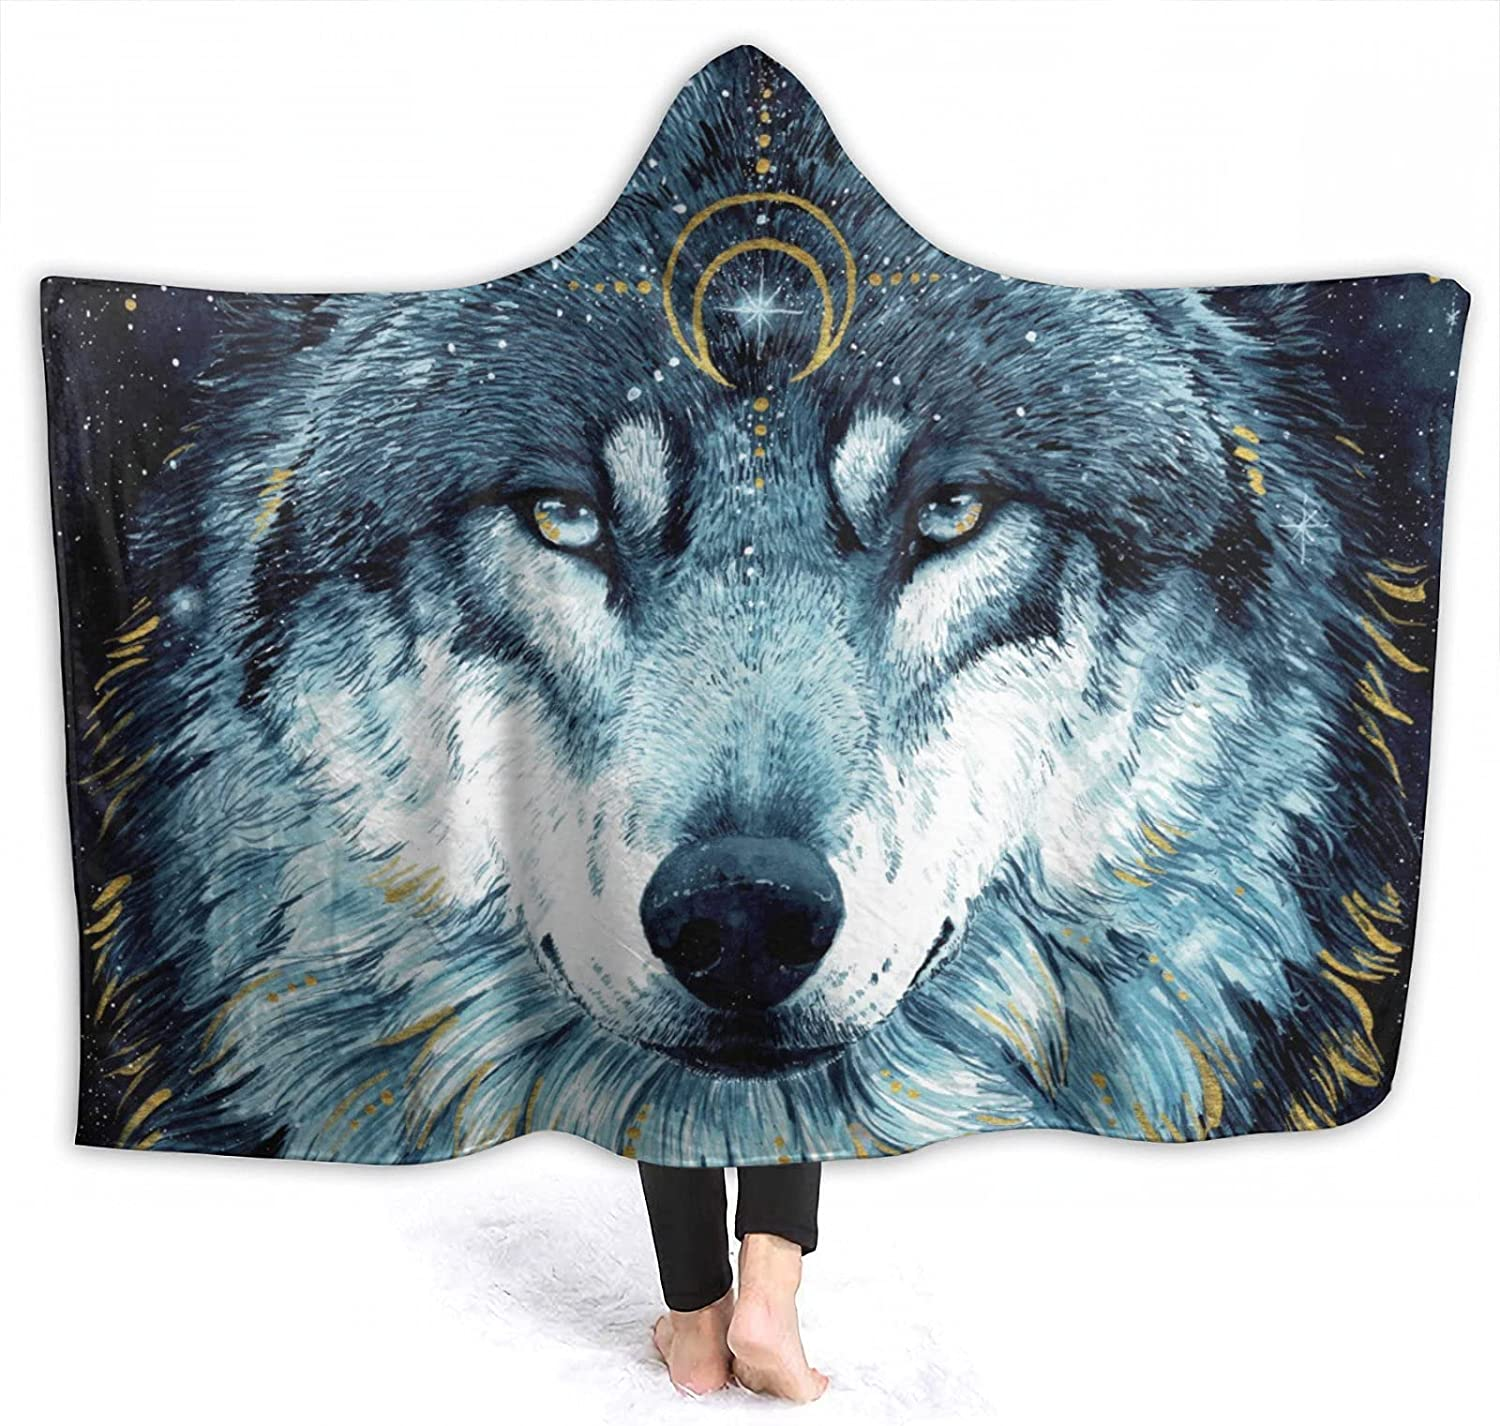 Prabhutaratna Star Wolf Flannel and Light Free Ranking TOP10 shipping anywhere in the nation Blankets Comfortable